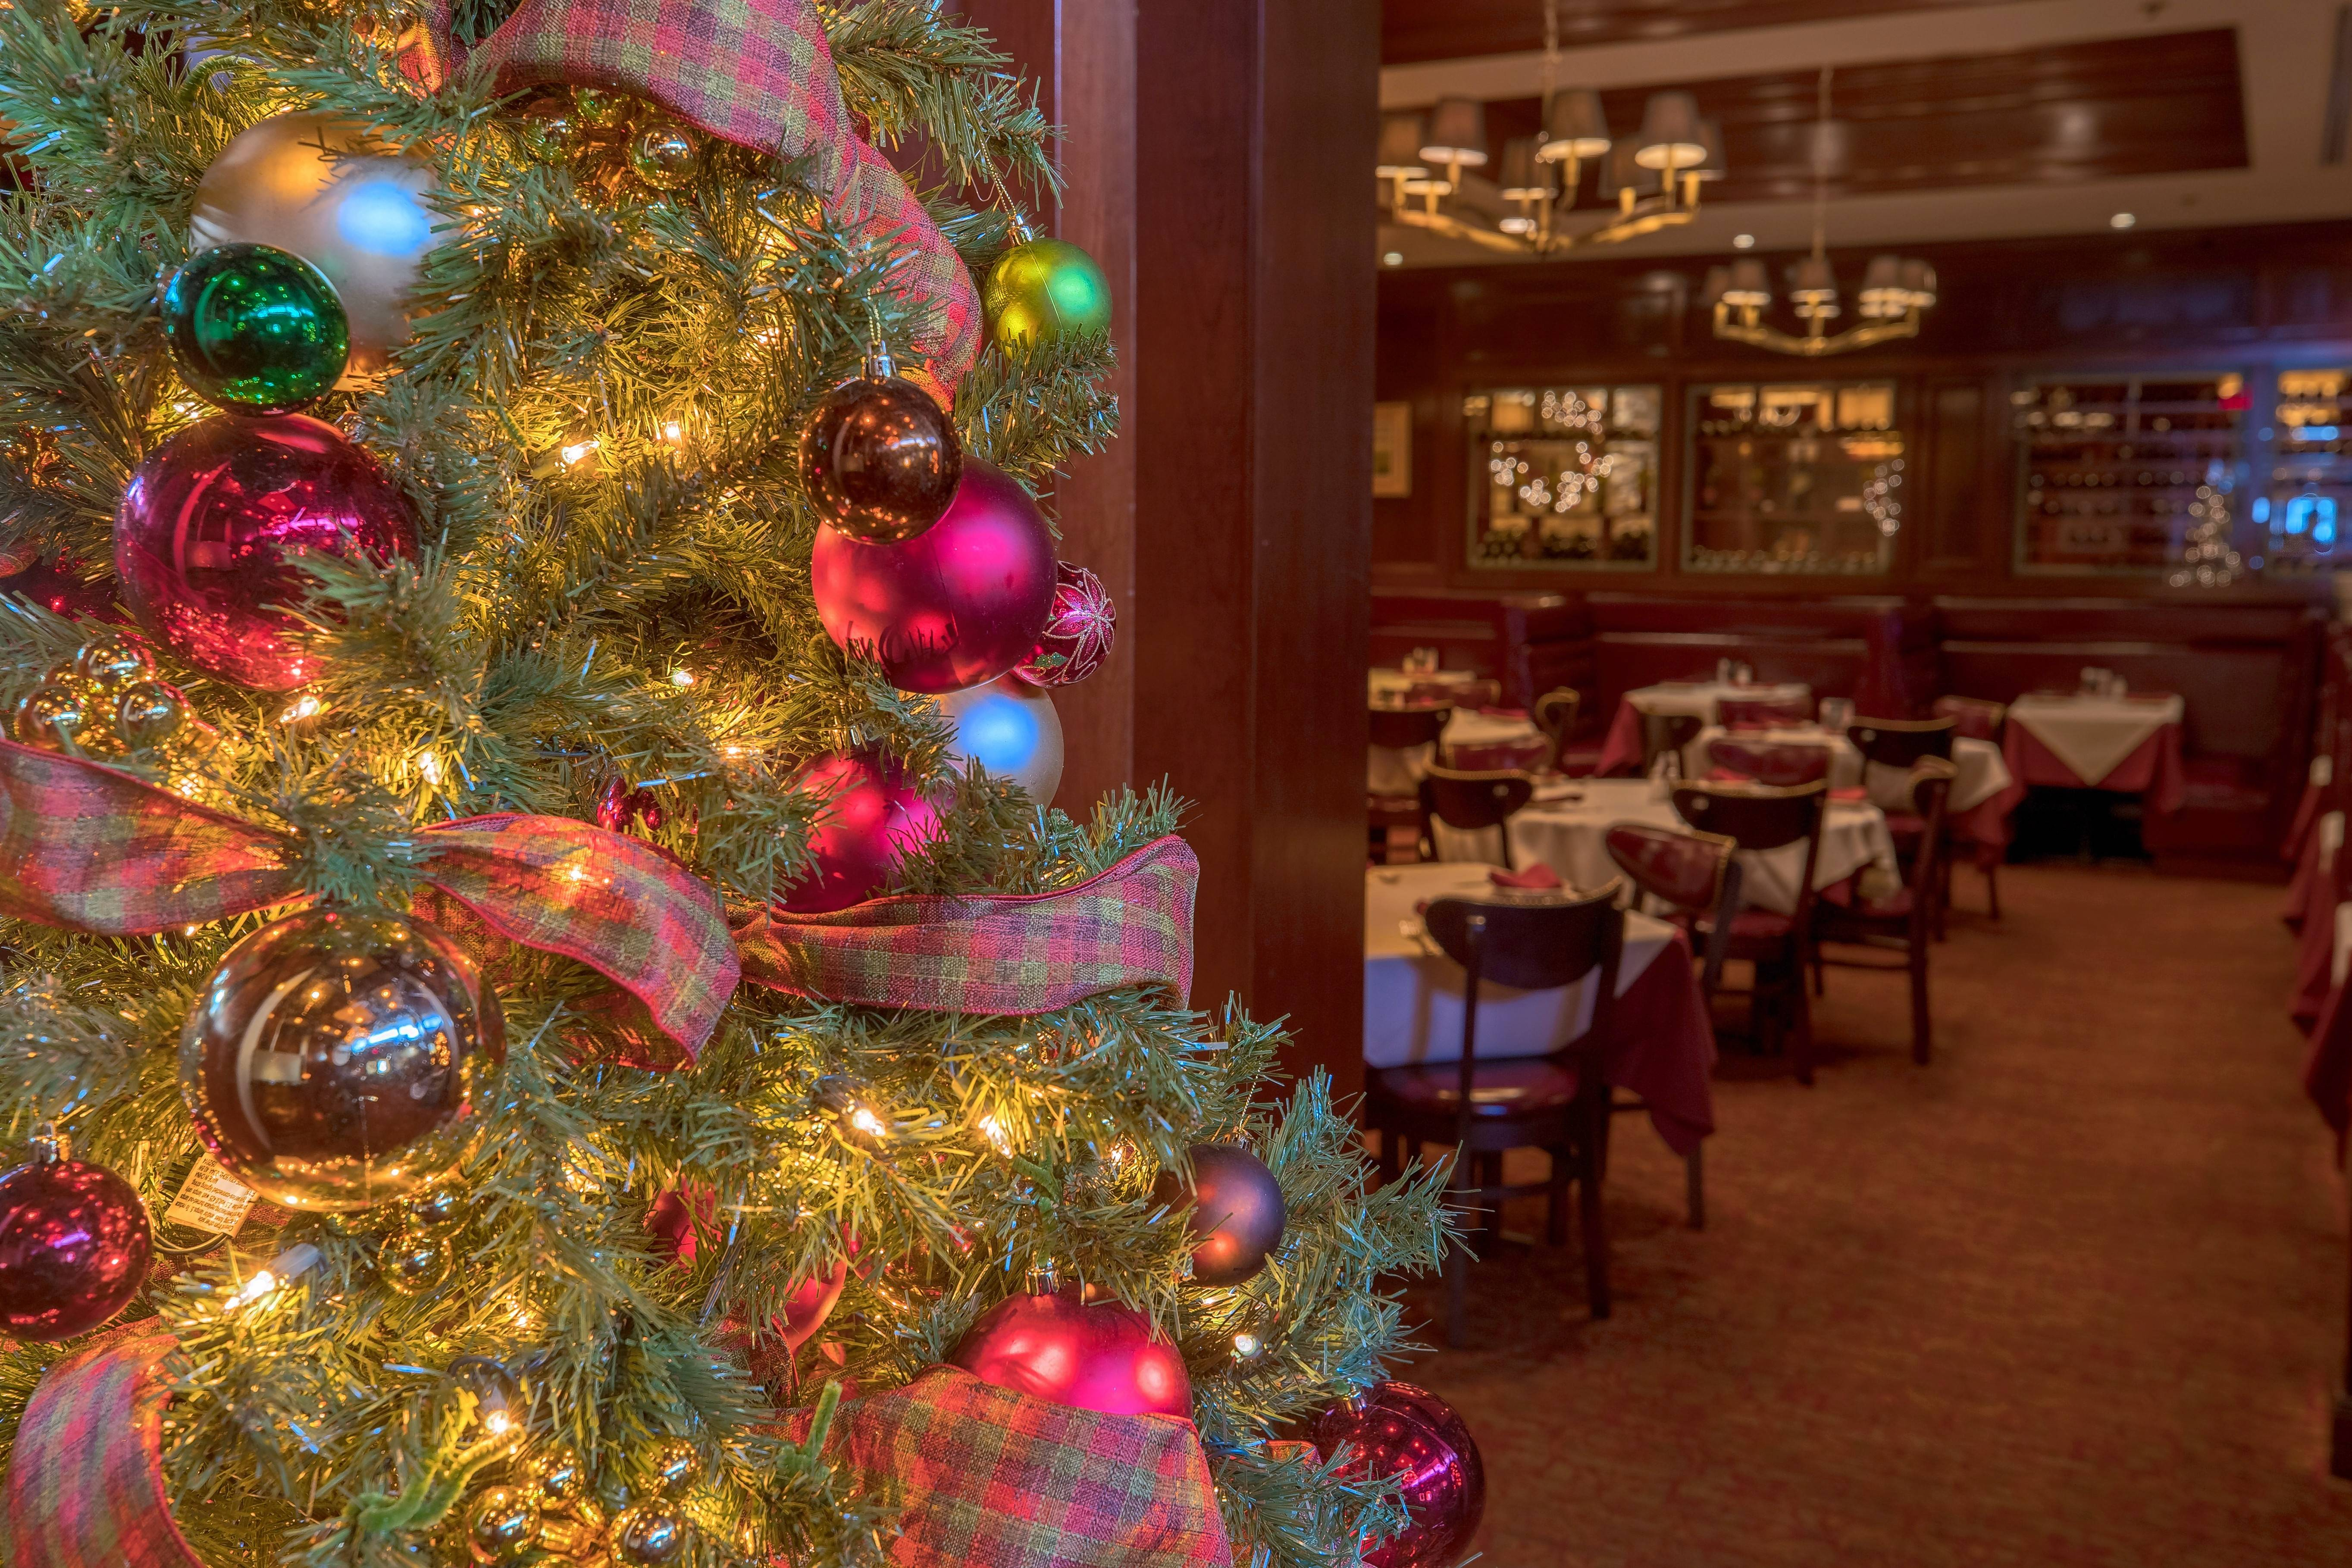 Celebrate the holidays in style at Gene & Georgetti in Rosemont.